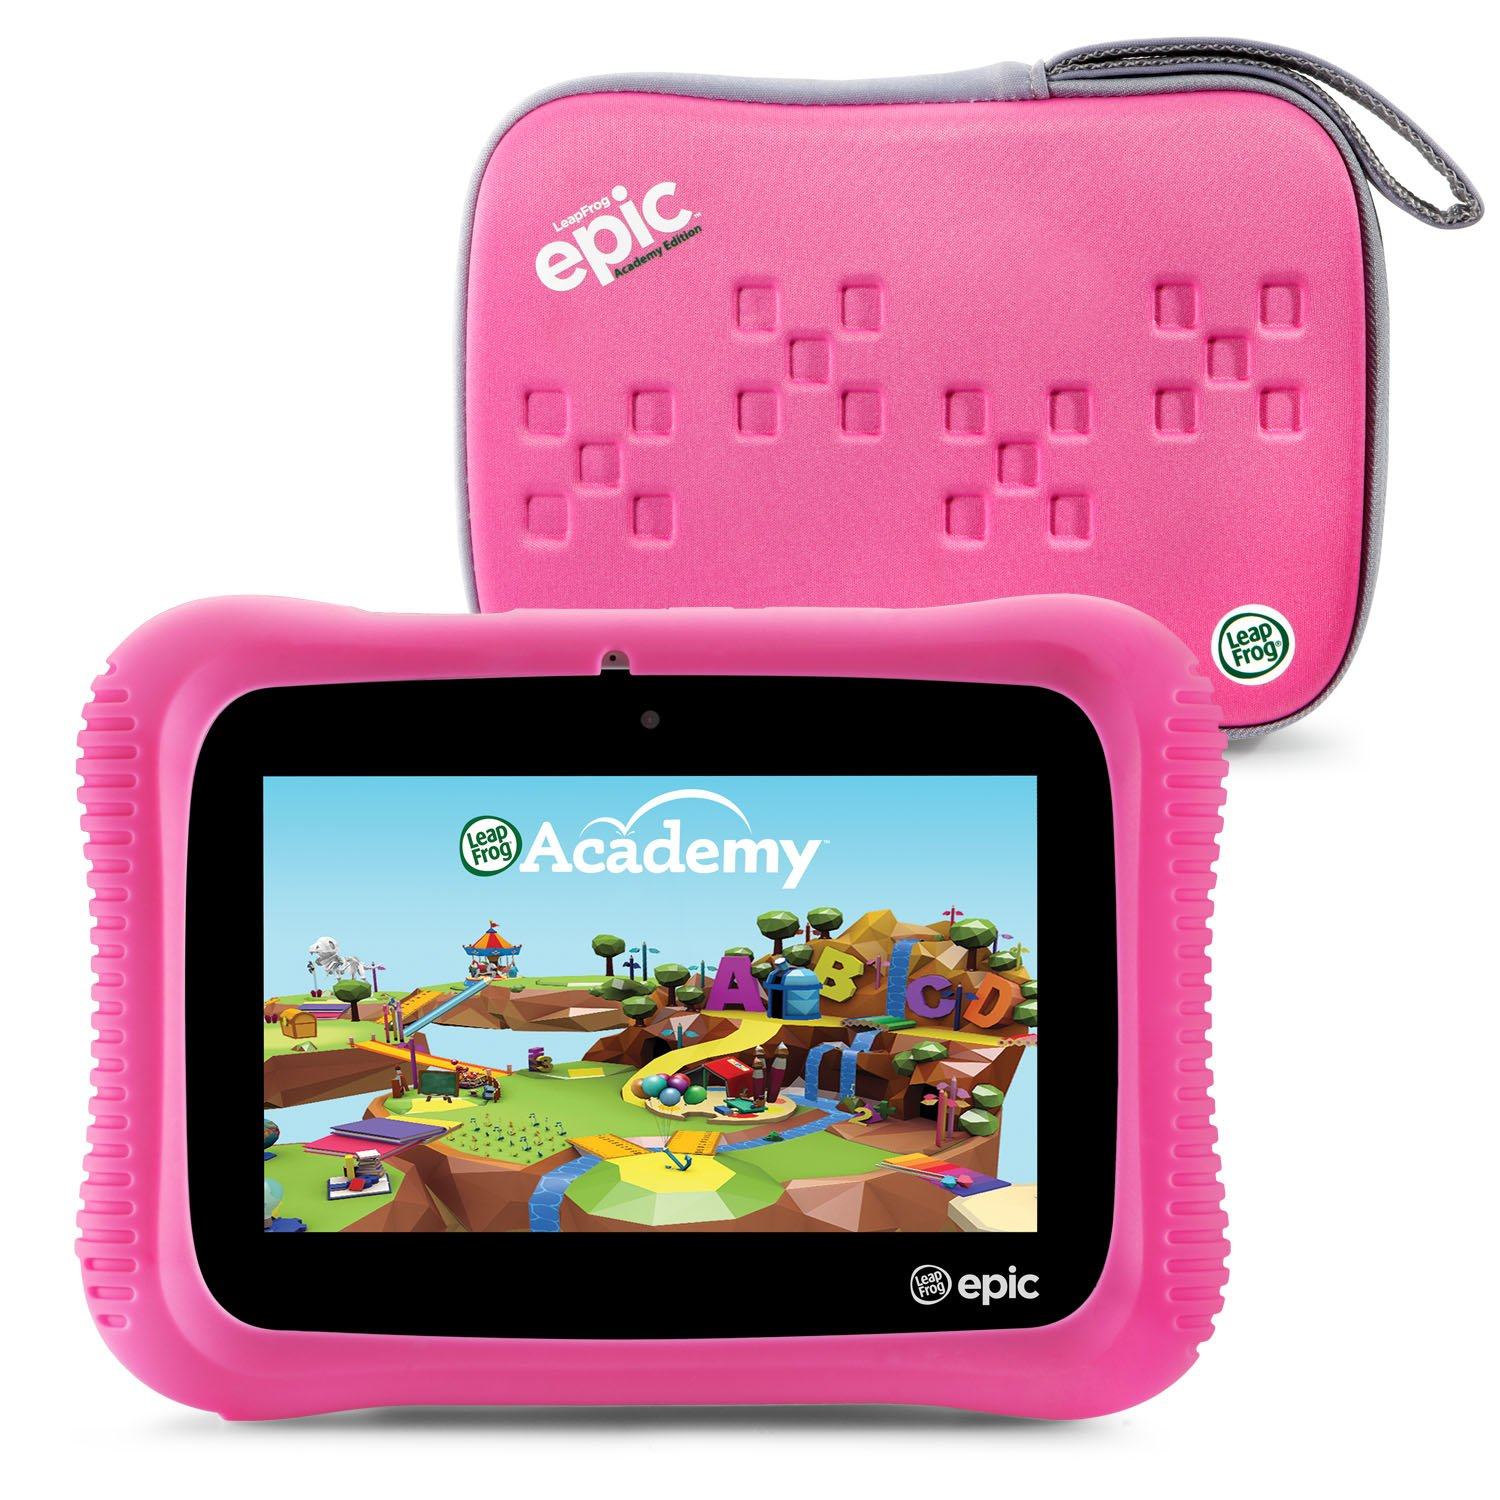 LeapFrog Epic Academy Edition 7'' Android 2.0 Based Kids Tablet-16GB with Carrying Case, Pink